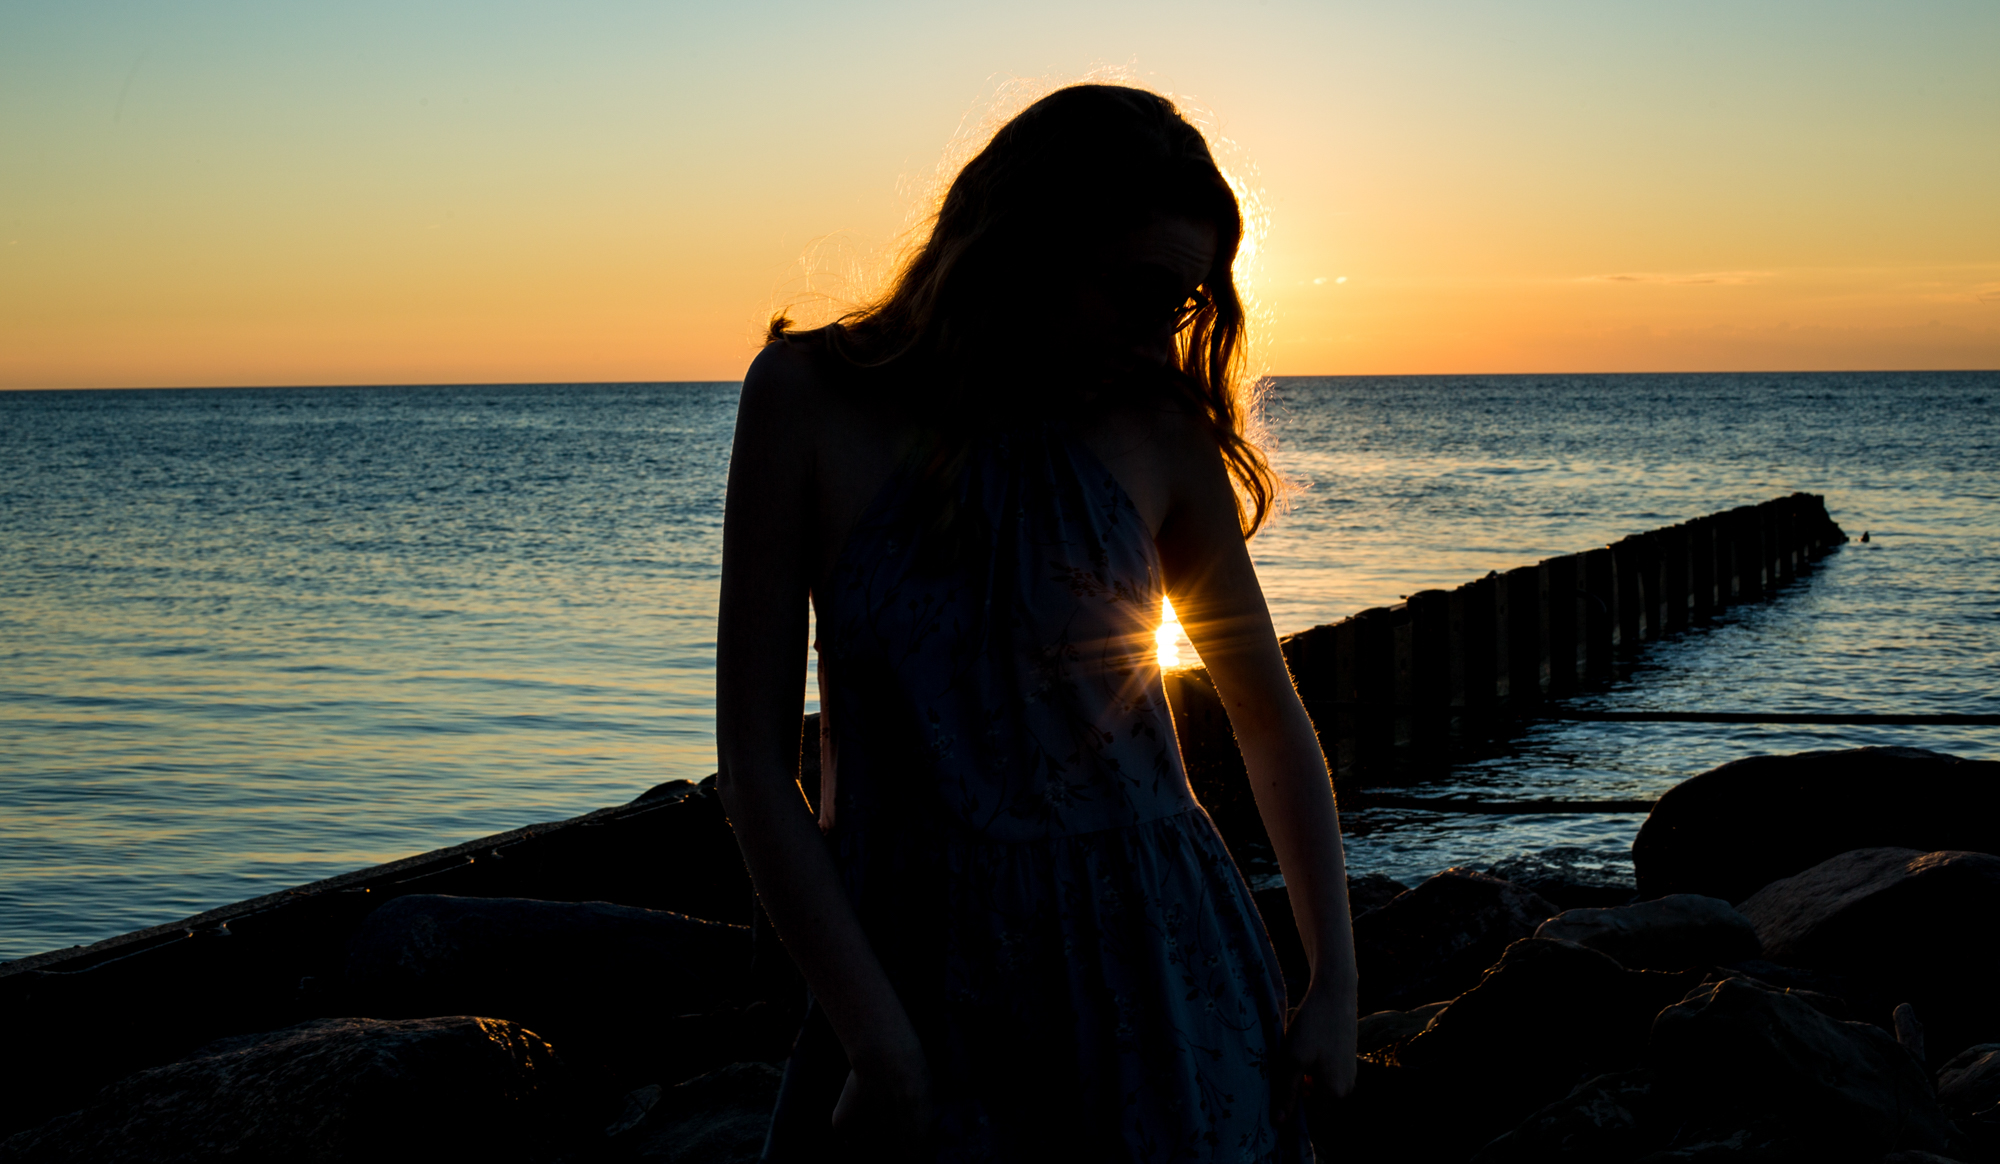 Silhouette of girl at Presque Isle during sunset for senior photos in Erie, PA